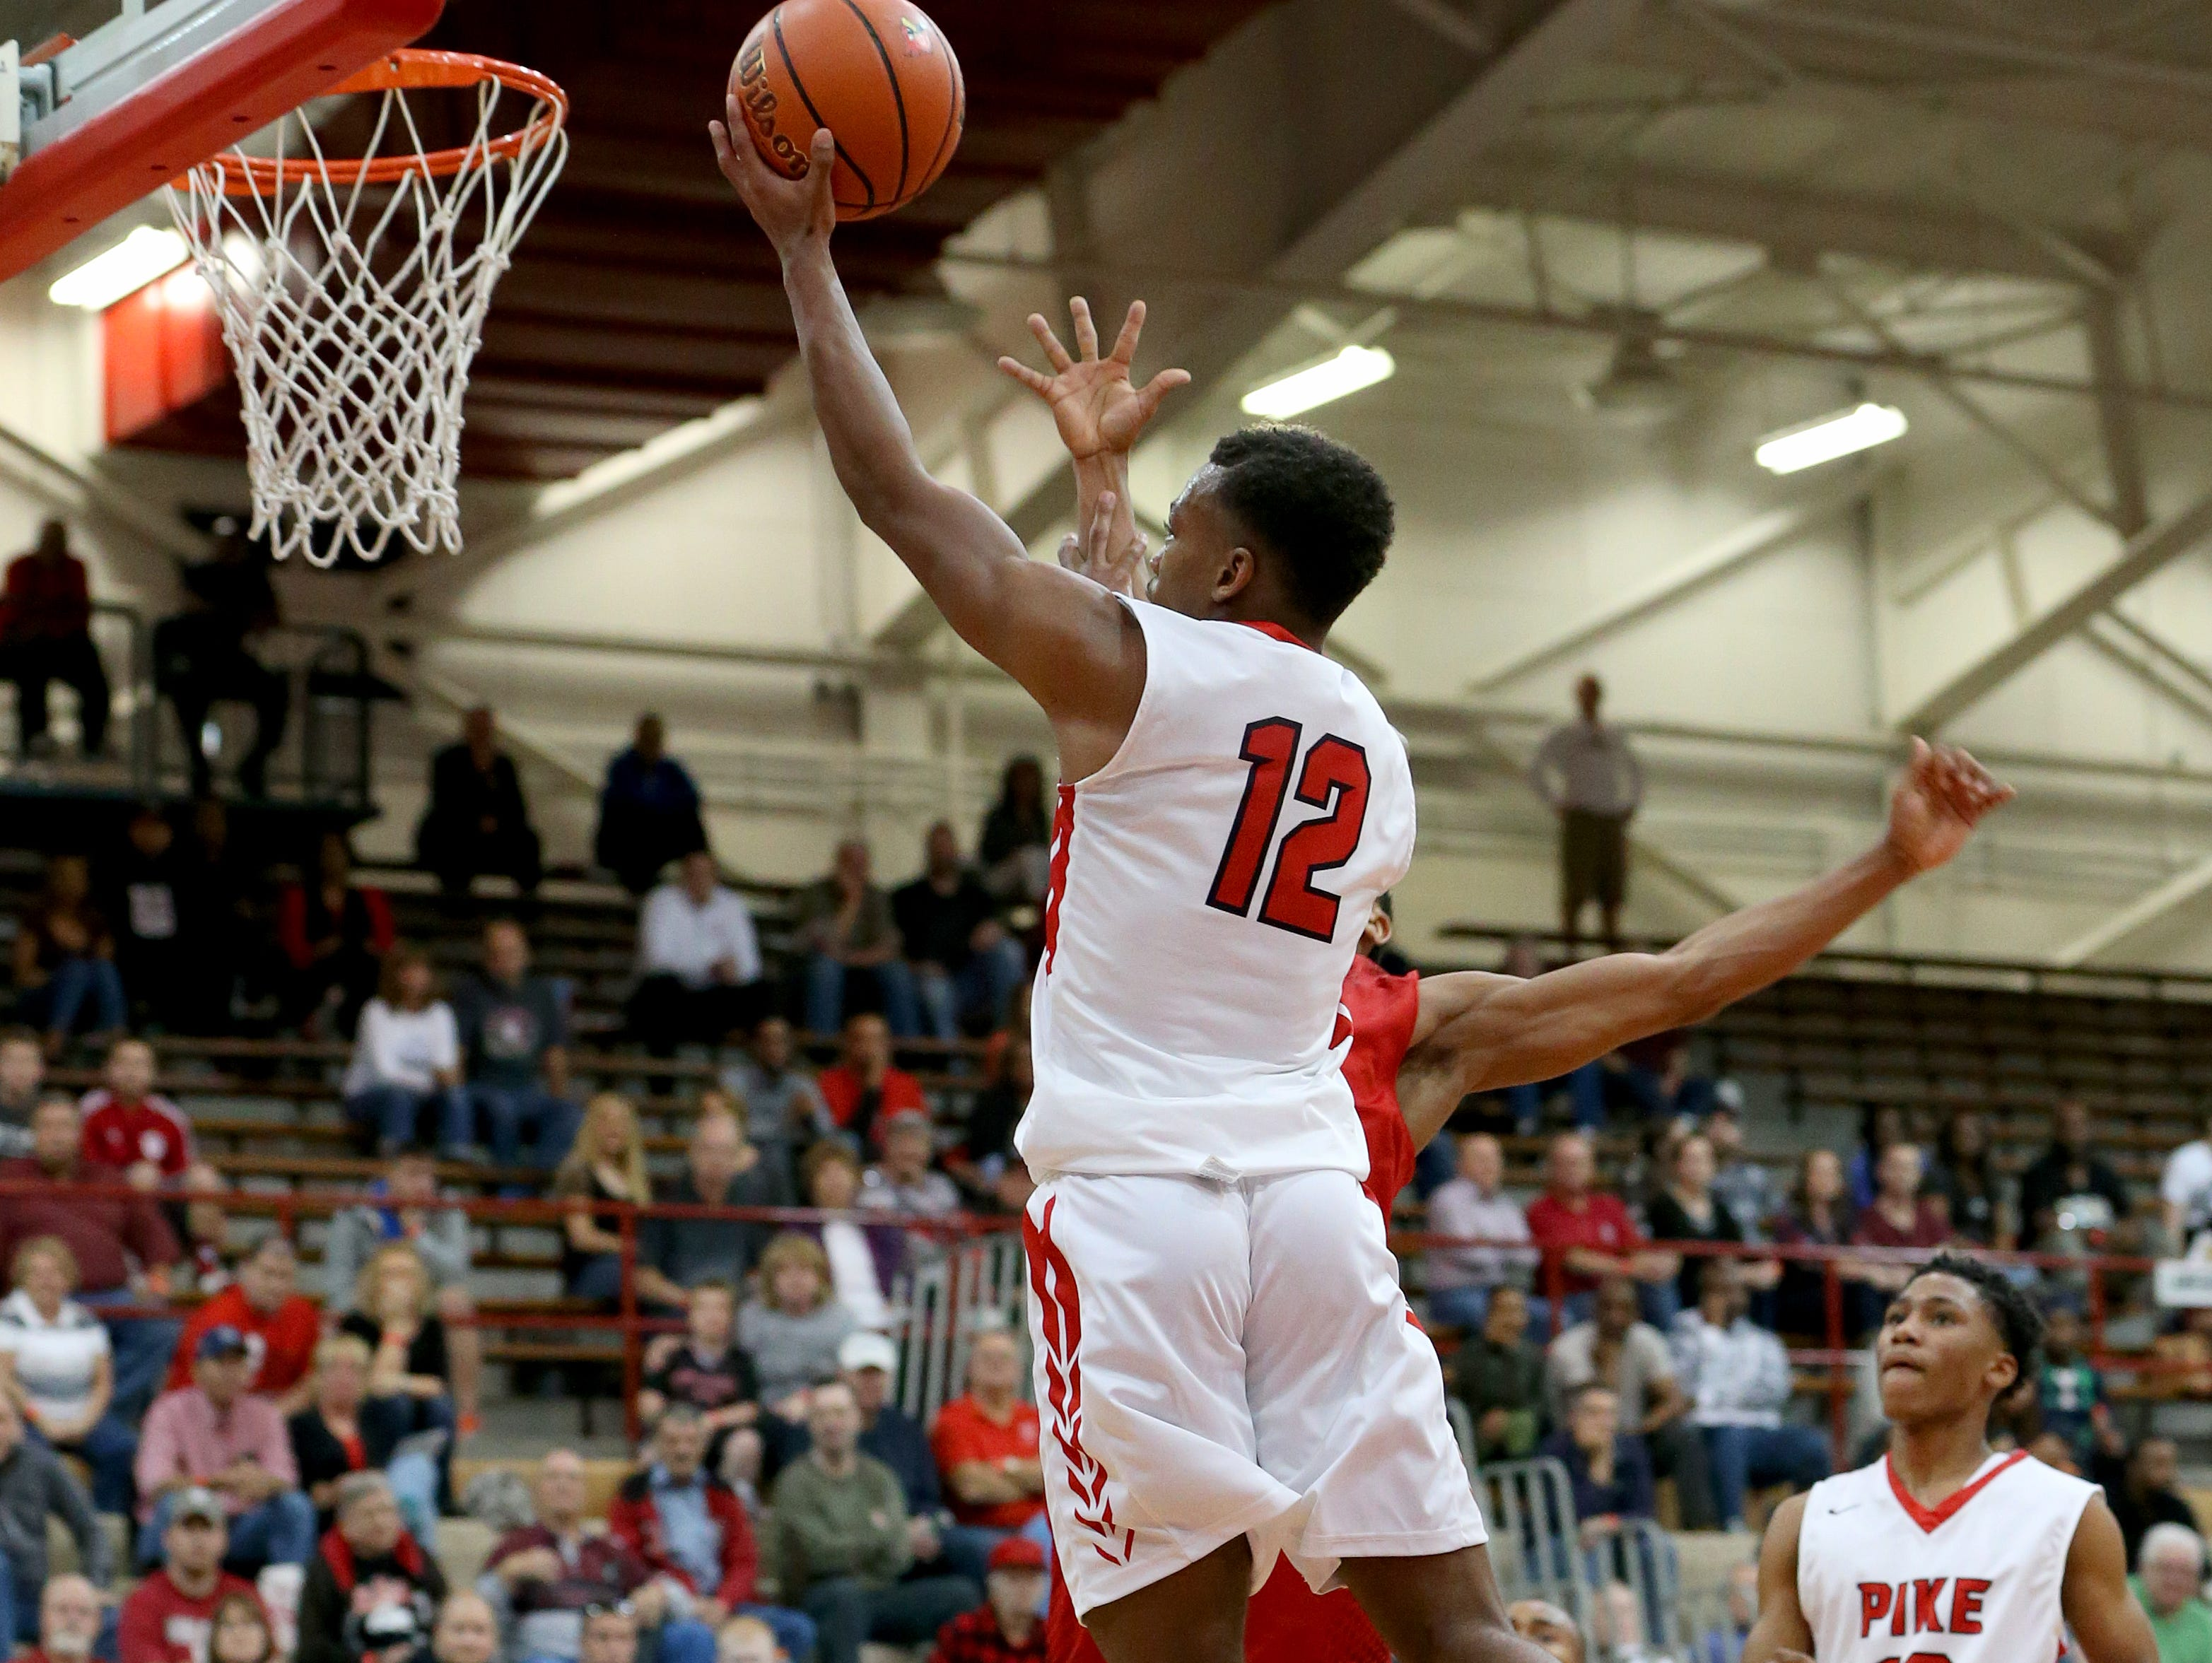 Pike's Justin Thomas (12) hits a layup against New Albany during the Tip Off Classic on Dec. 12, 2015.